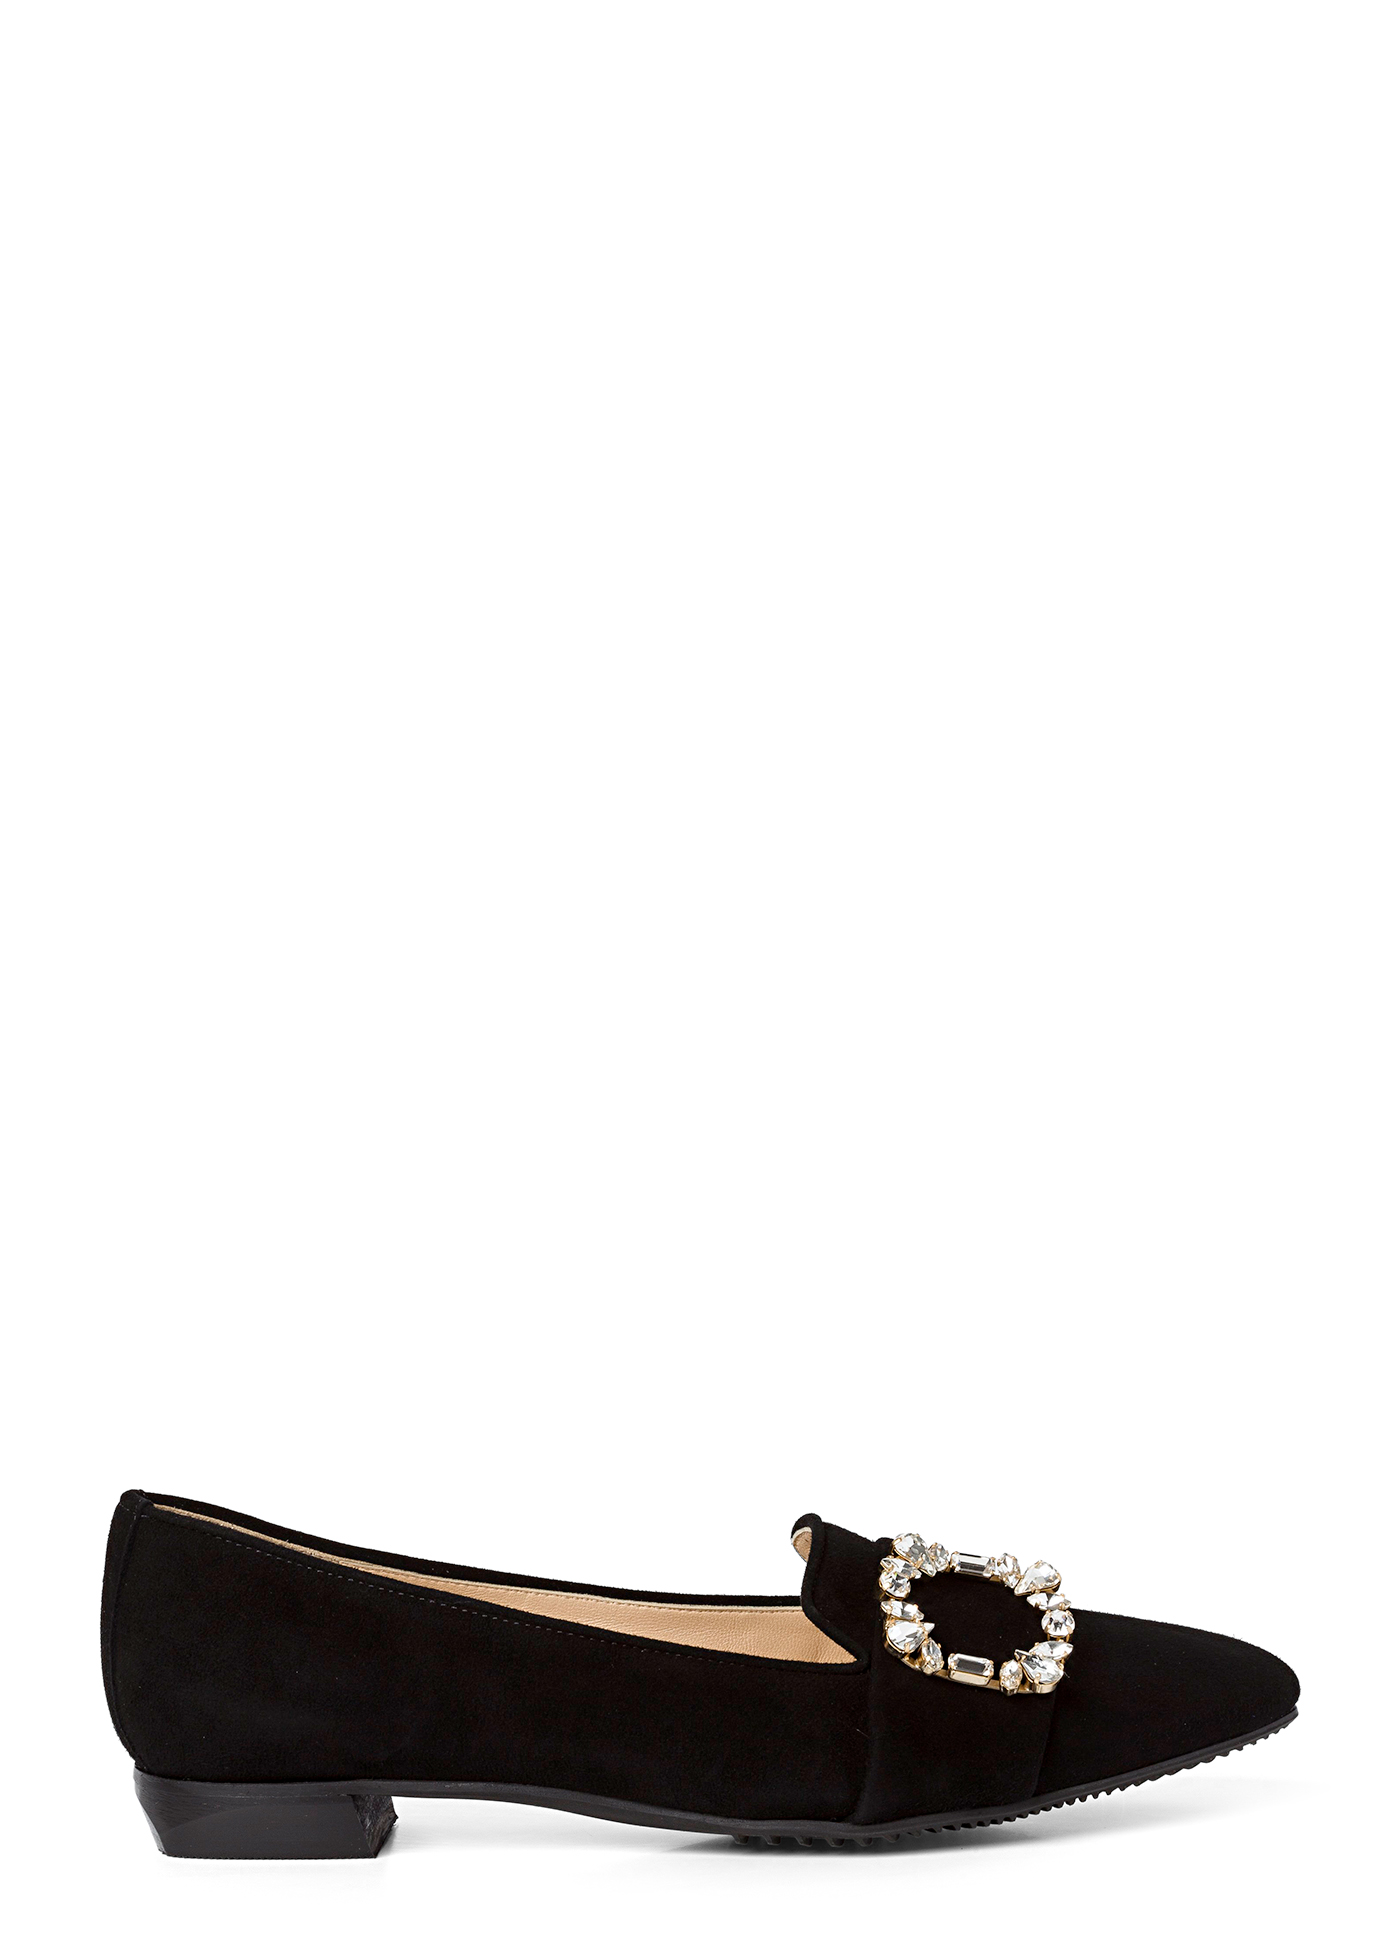 LOAFER WITH METALLIC DETAIL image number 0